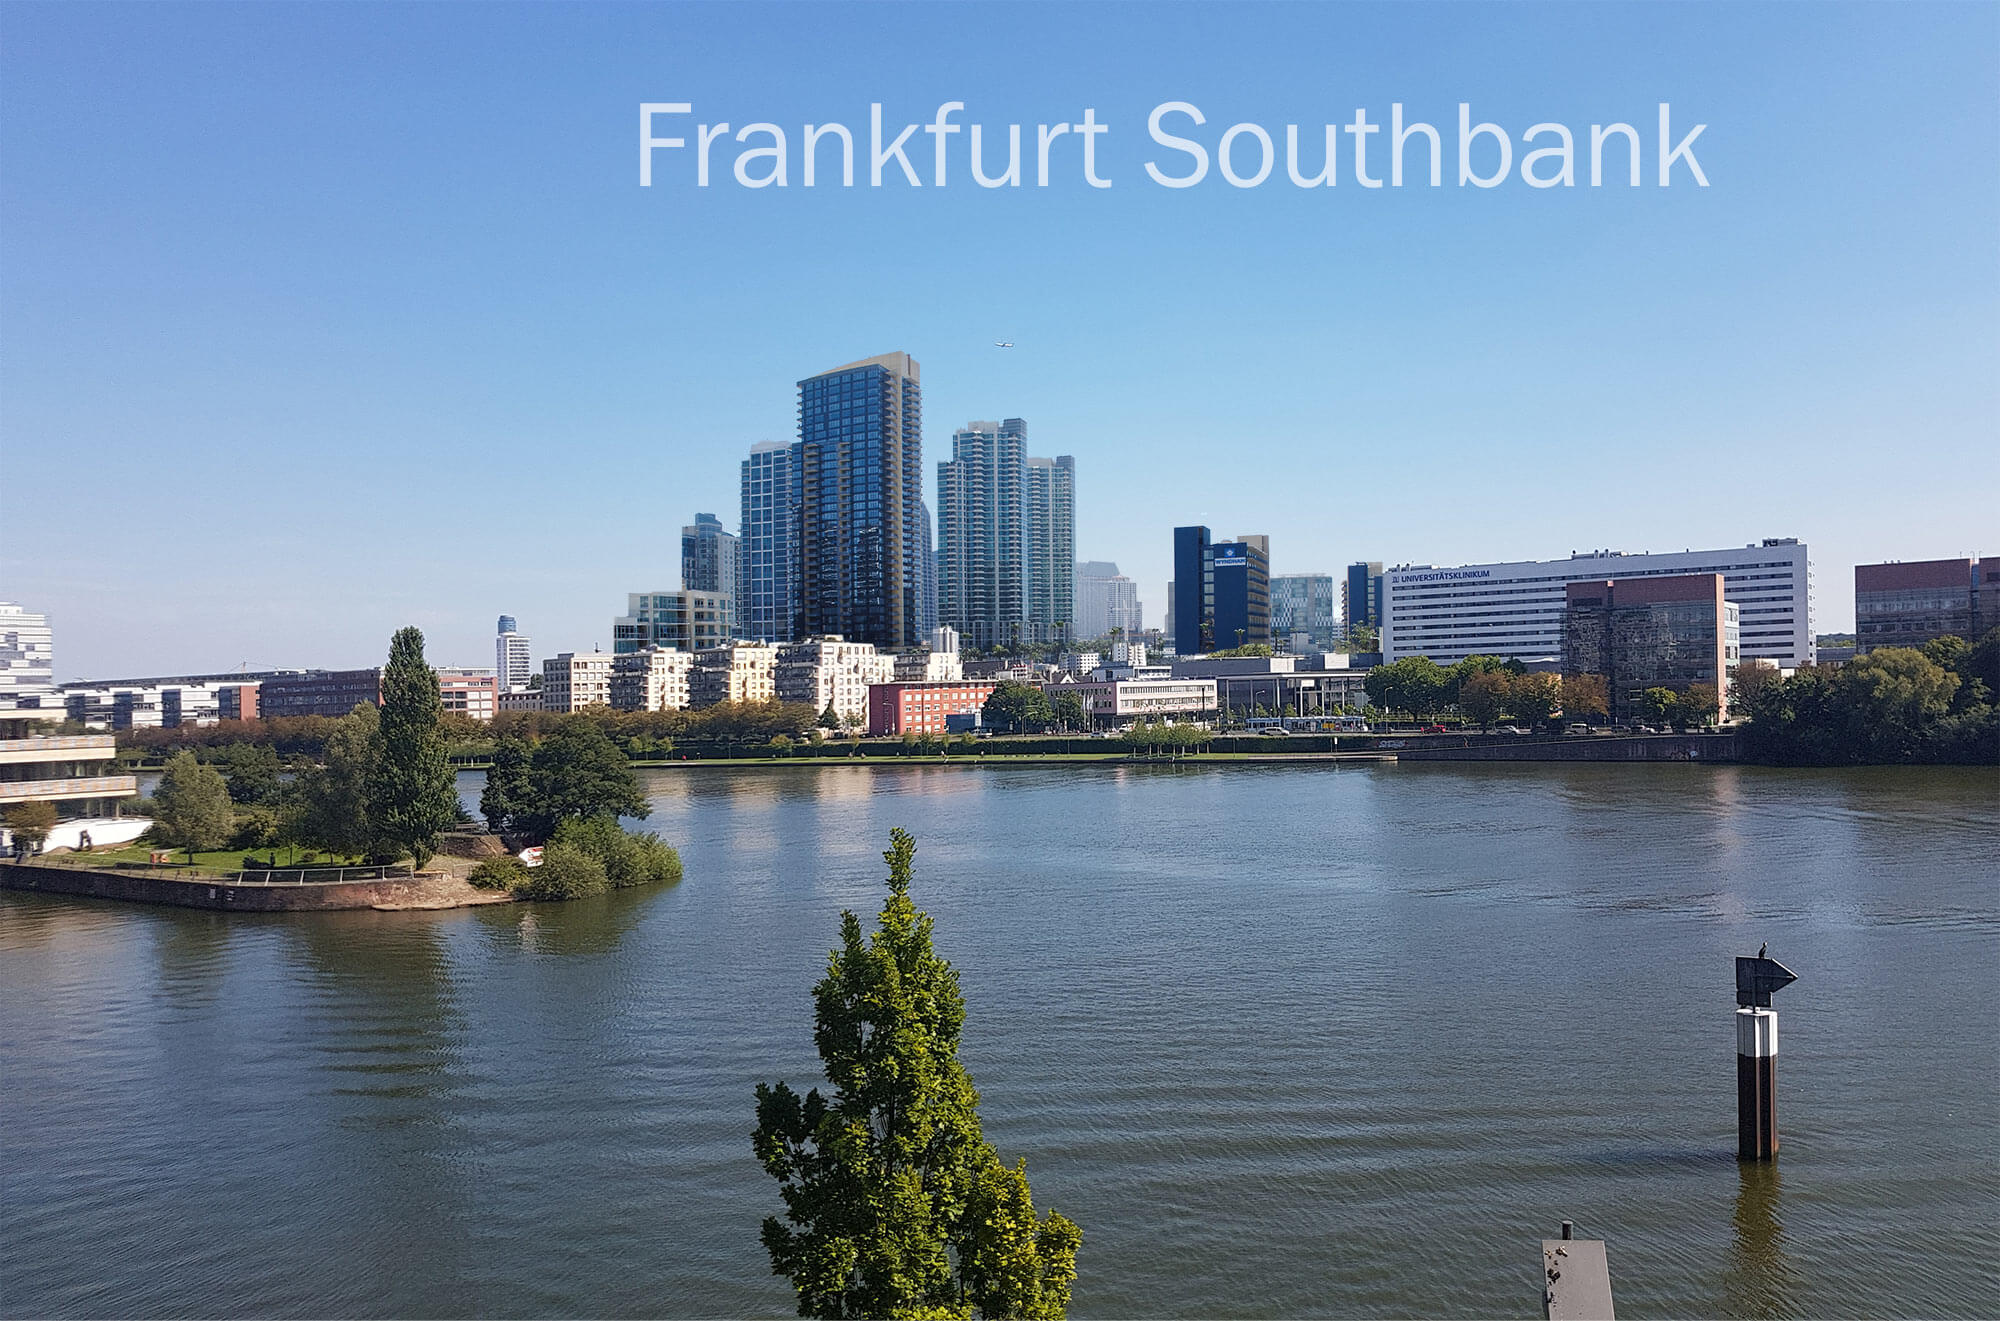 The city needs the opposite pole – Frankfurt Southbank